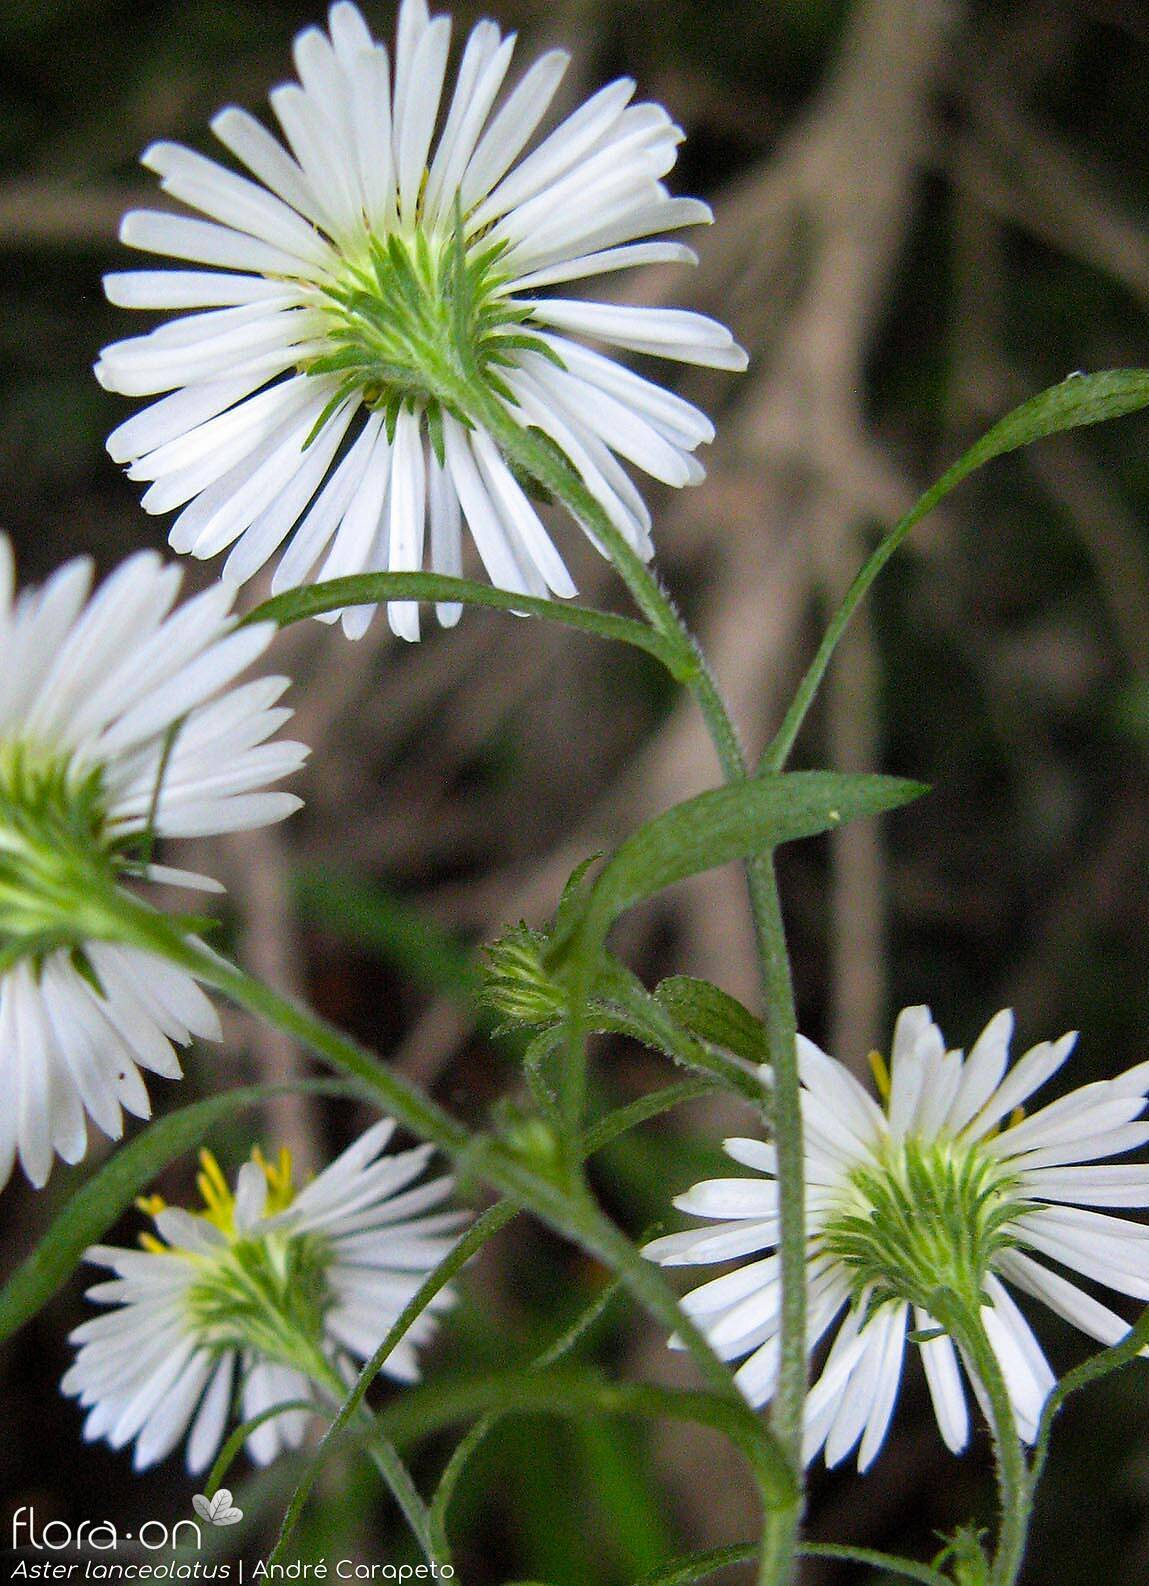 Aster lanceolatus - Capítulo | André Carapeto; CC BY-NC 4.0